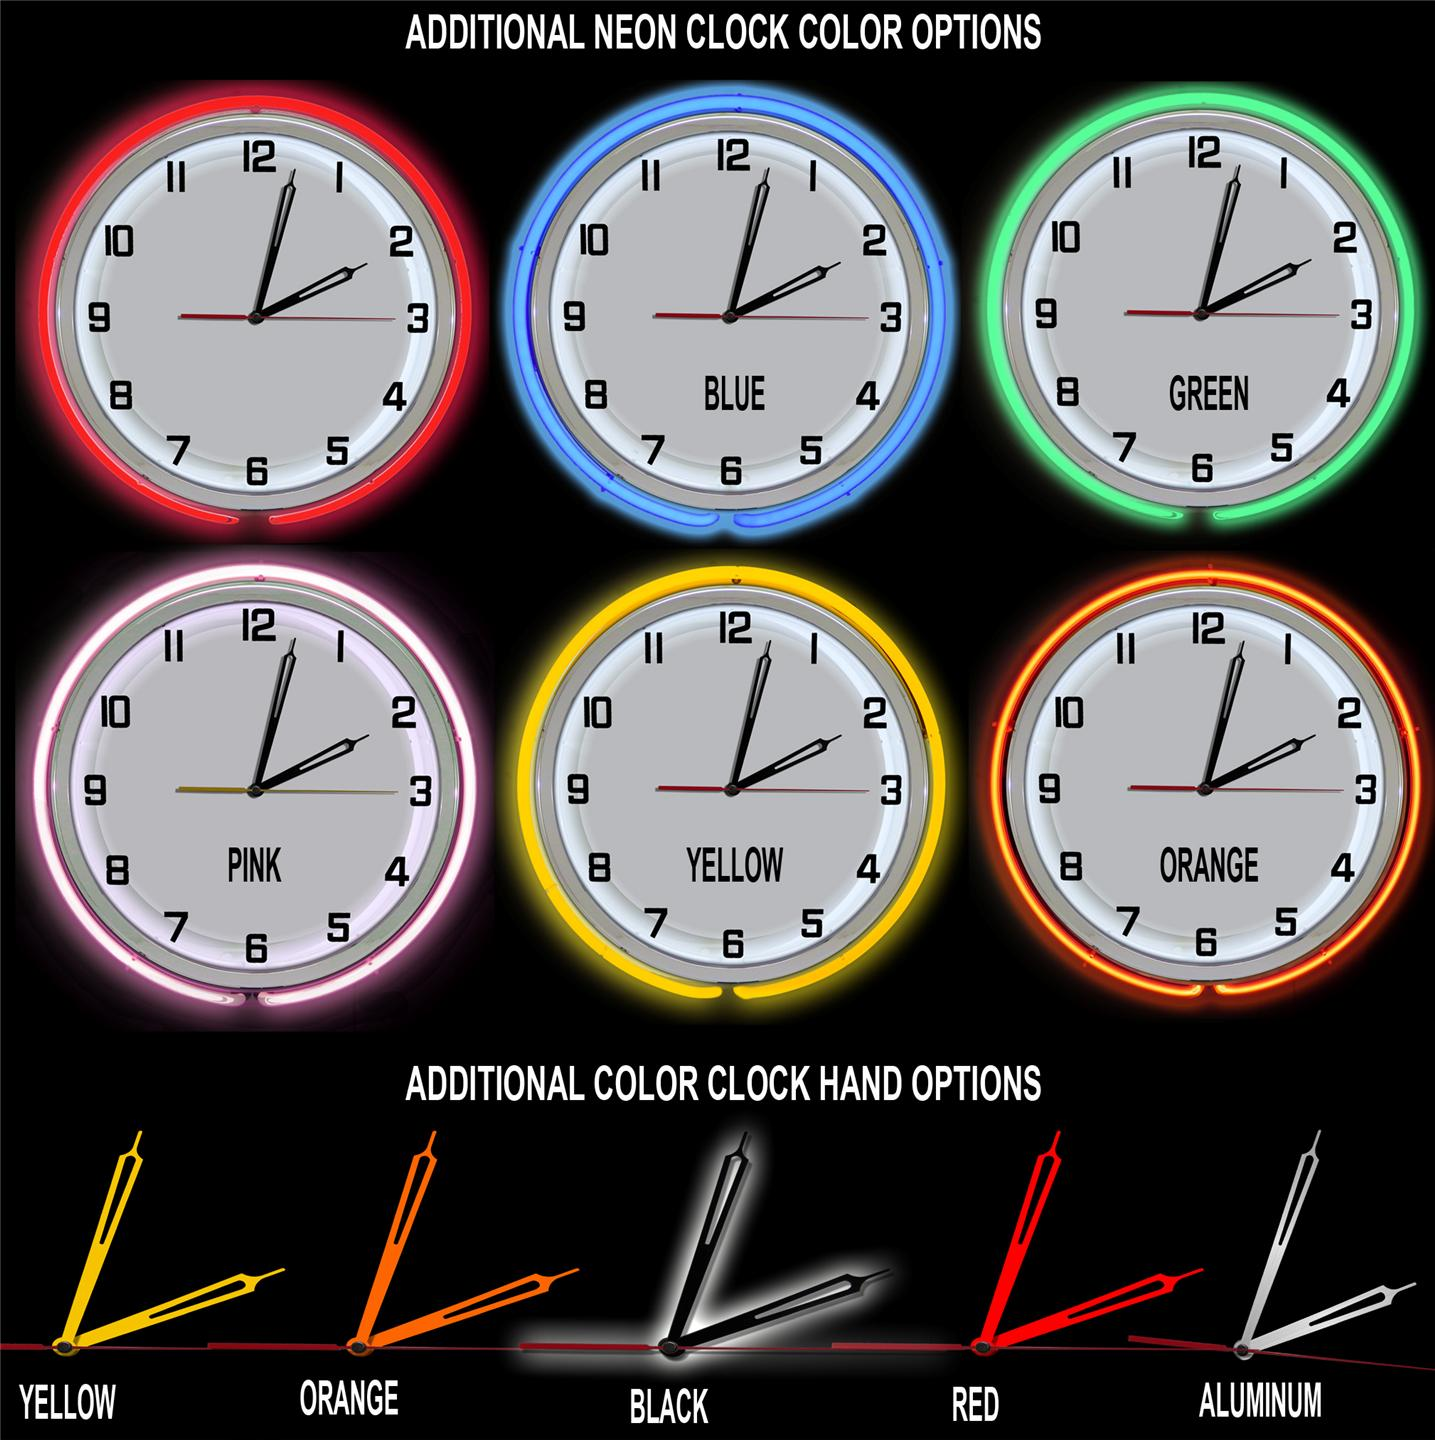 Redeye Laserworks Neon Clock Color Options